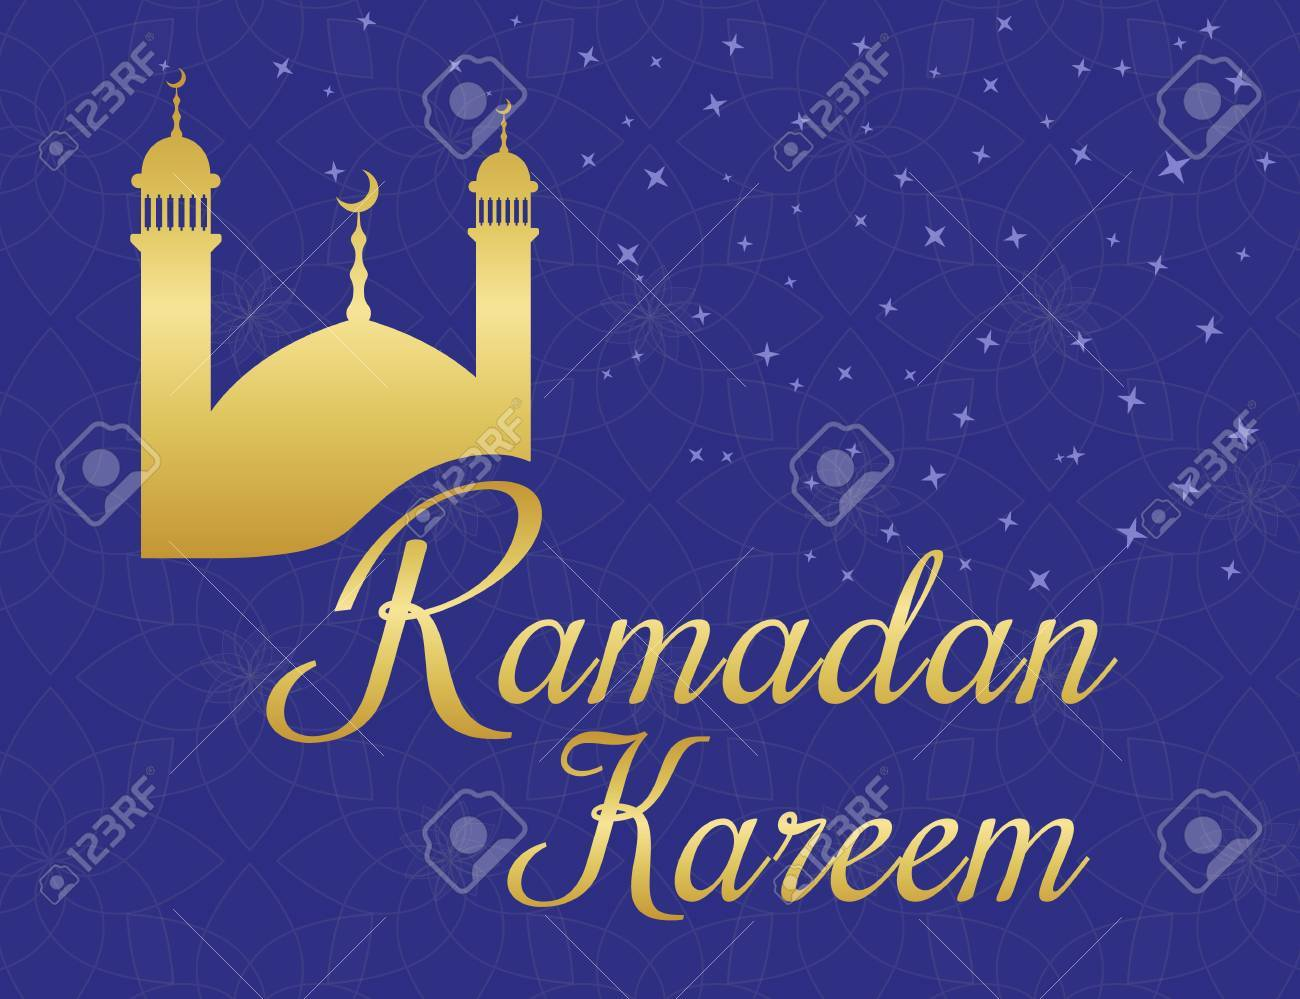 Ramadan Kareem Greetings Poster With Gold Mosque On Violet